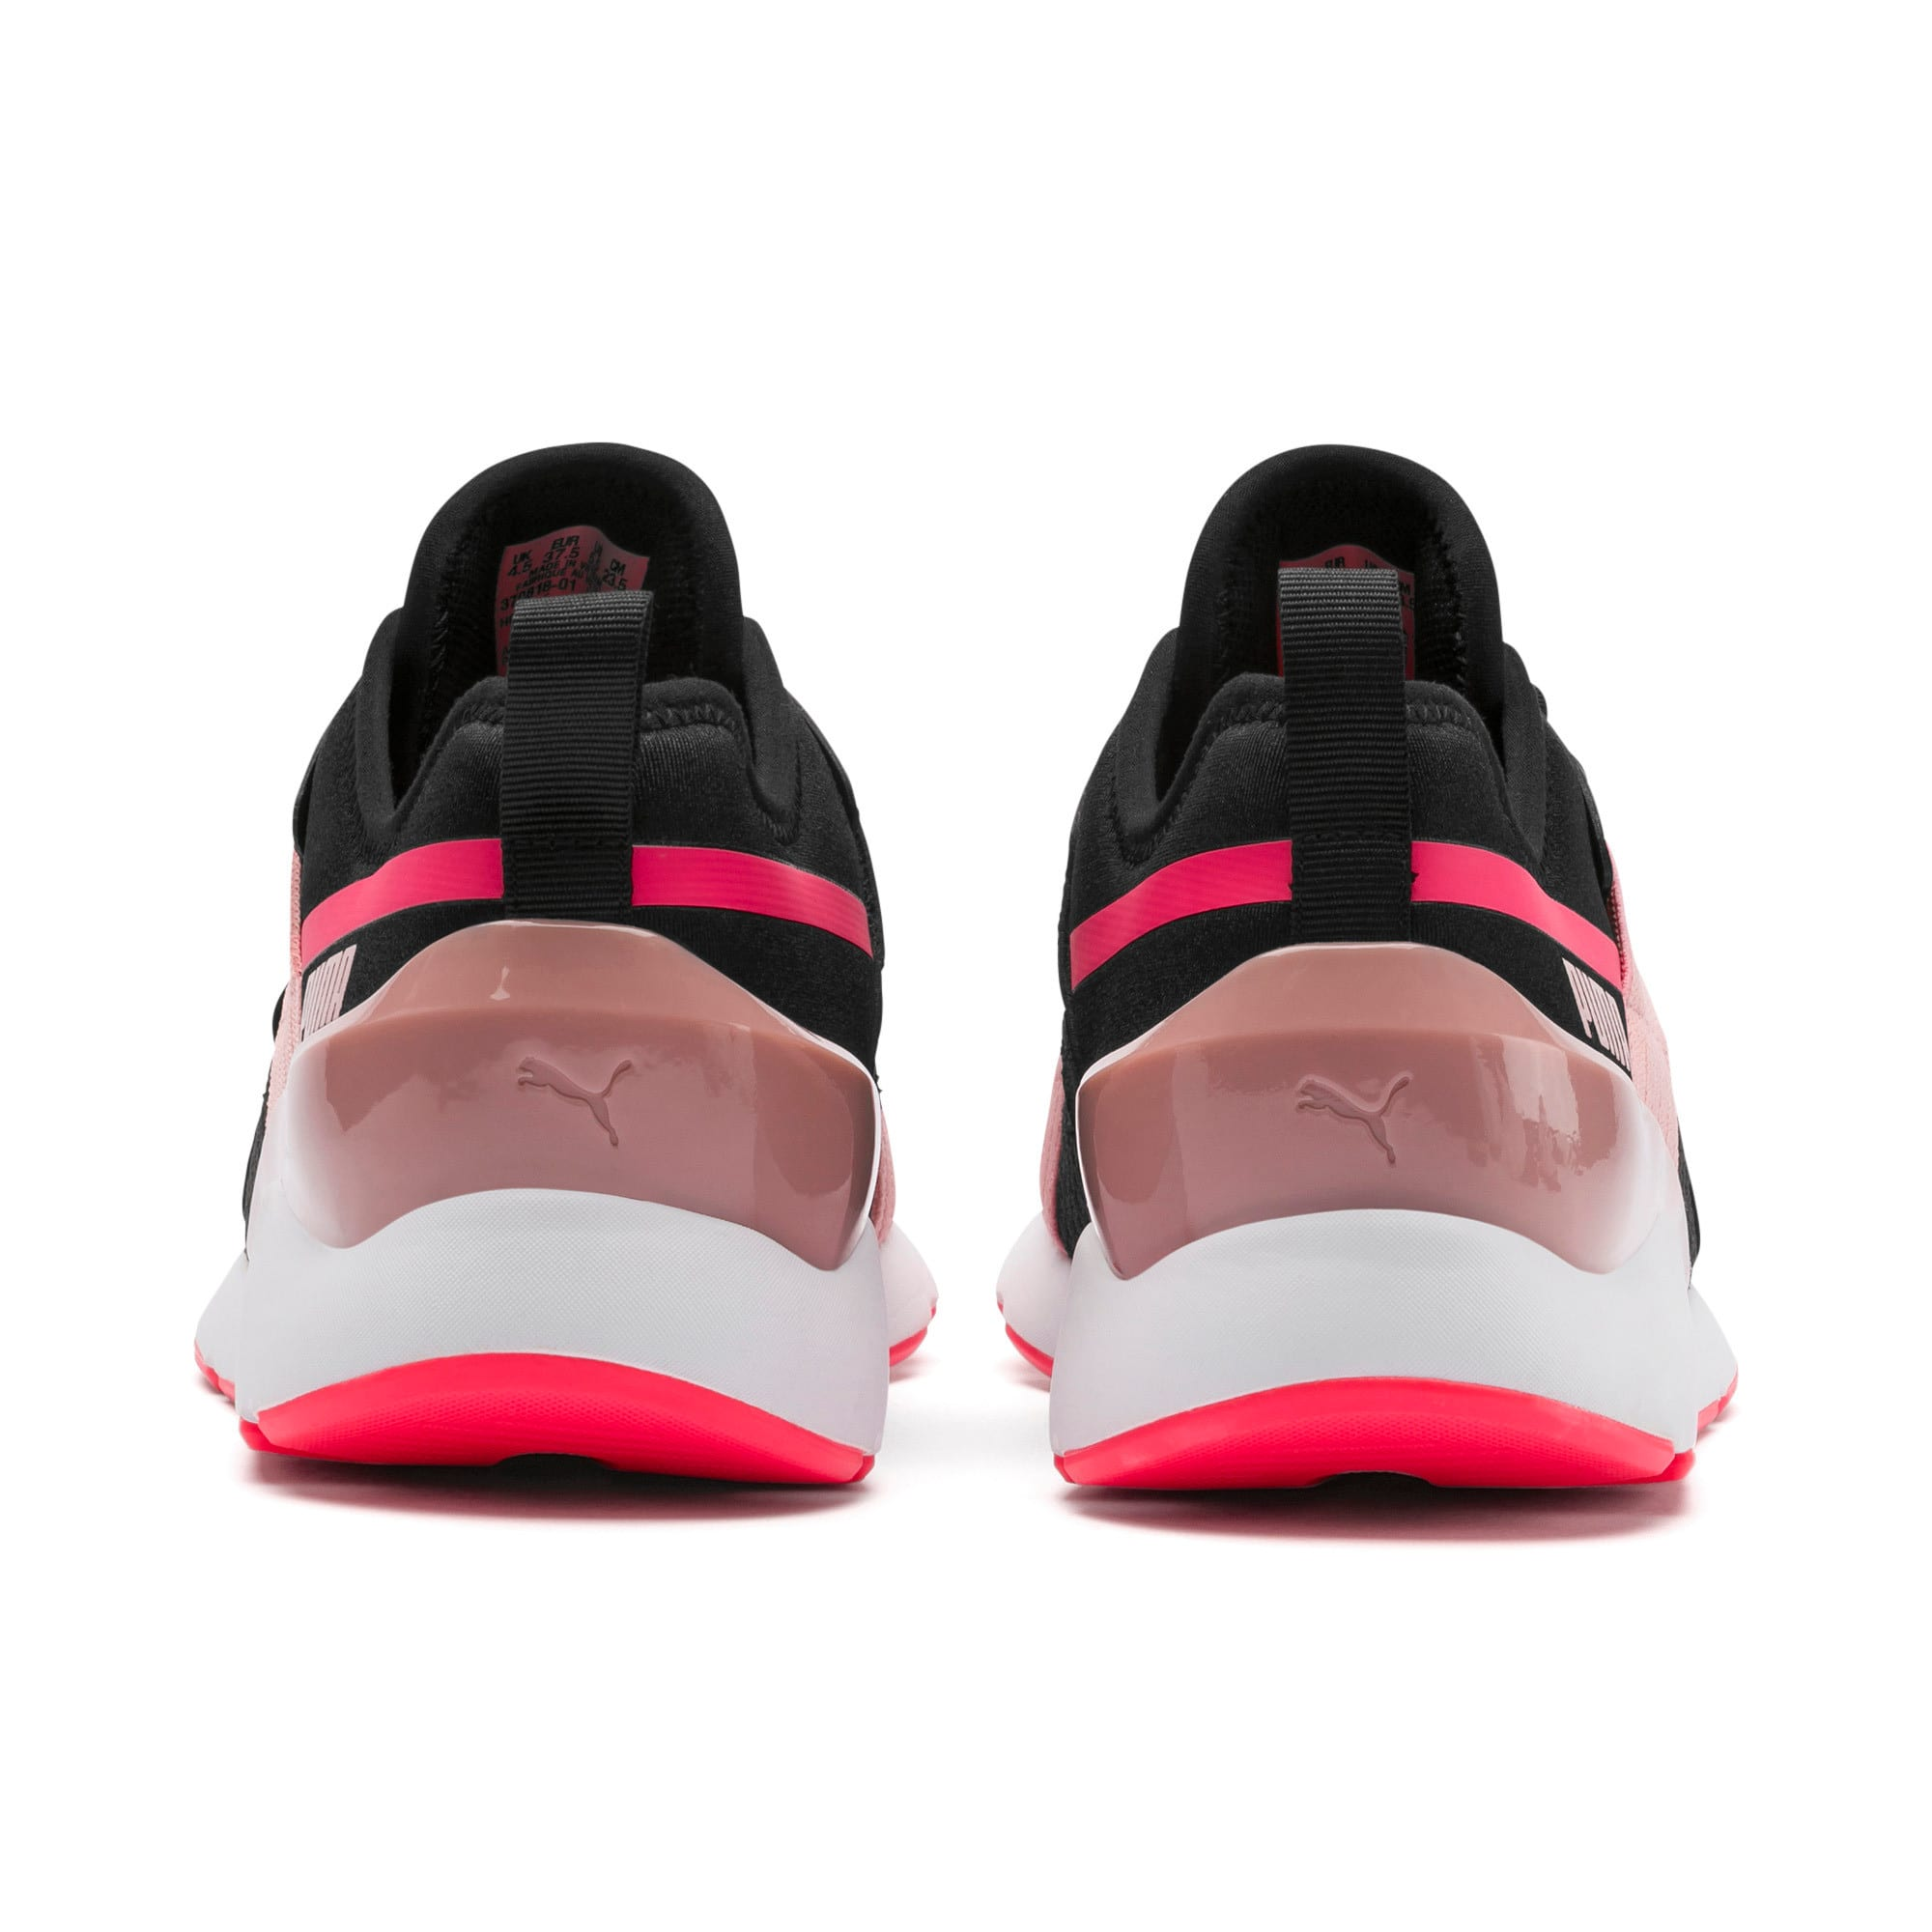 Thumbnail 4 of Muse X-2 Women's Sneakers, Puma Black-Bridal Rose, medium